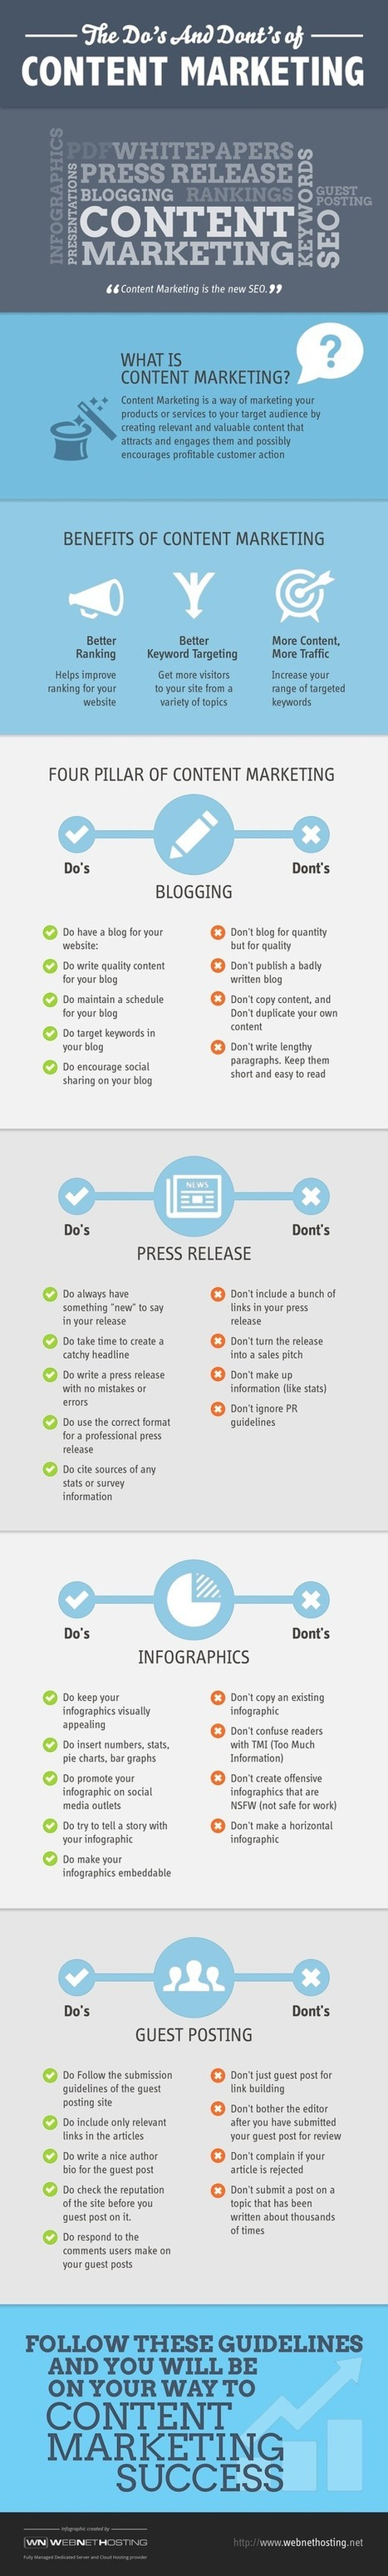 The Do's and Dont's of Content Marketing - Infographic | Social Media Information Updates | Scoop.it